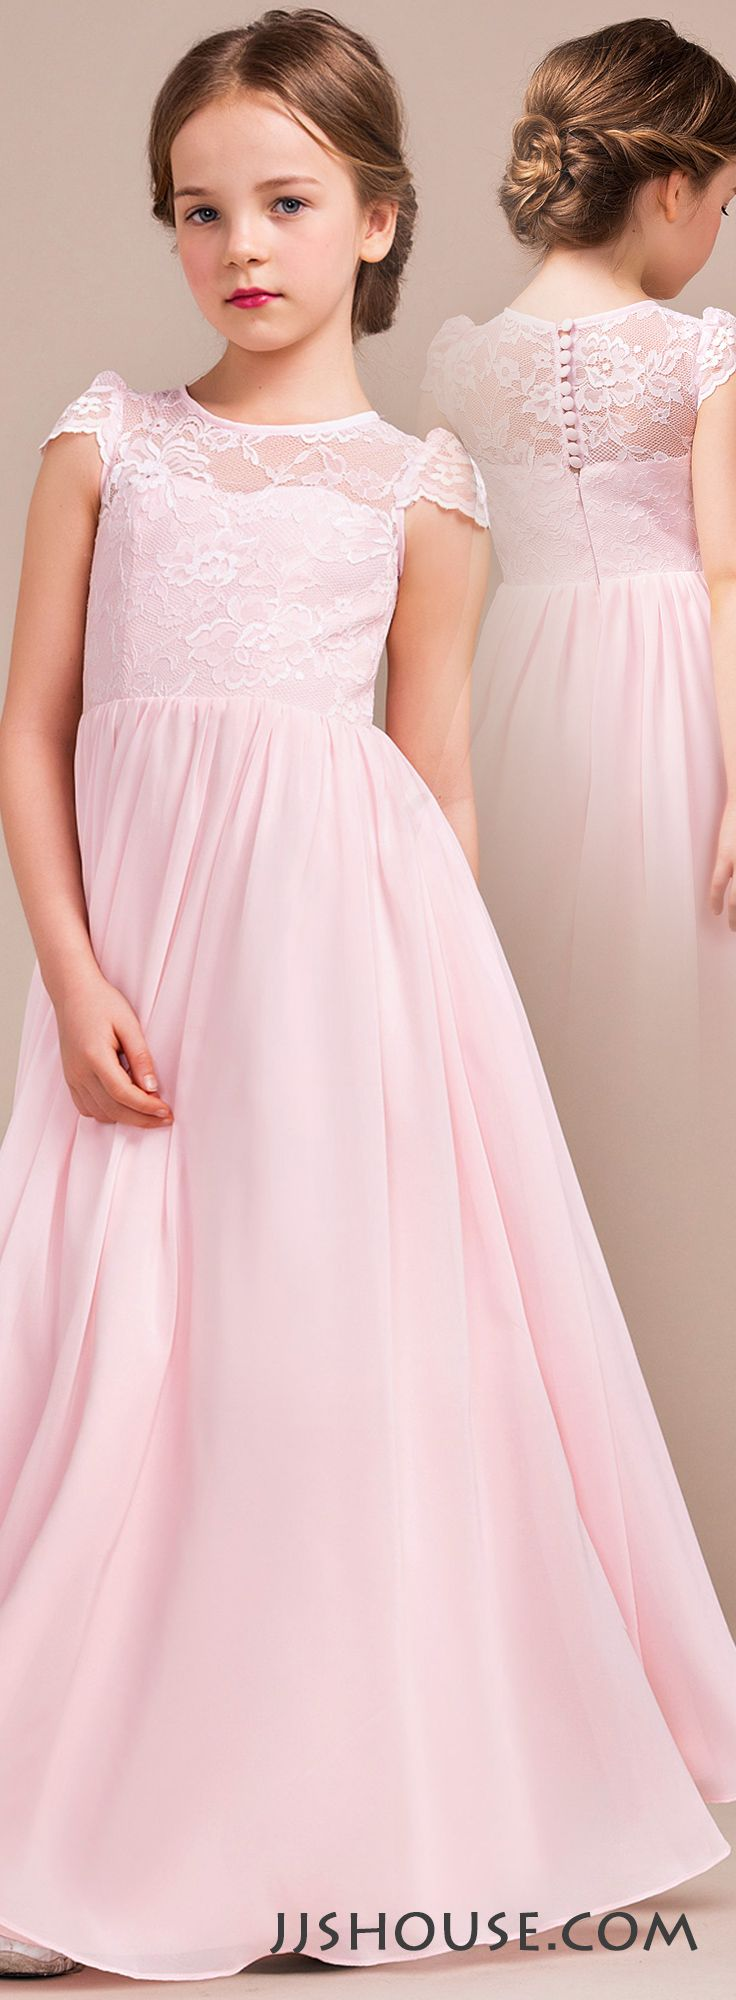 Best 25+ Junior bridesmaids ideas on Pinterest